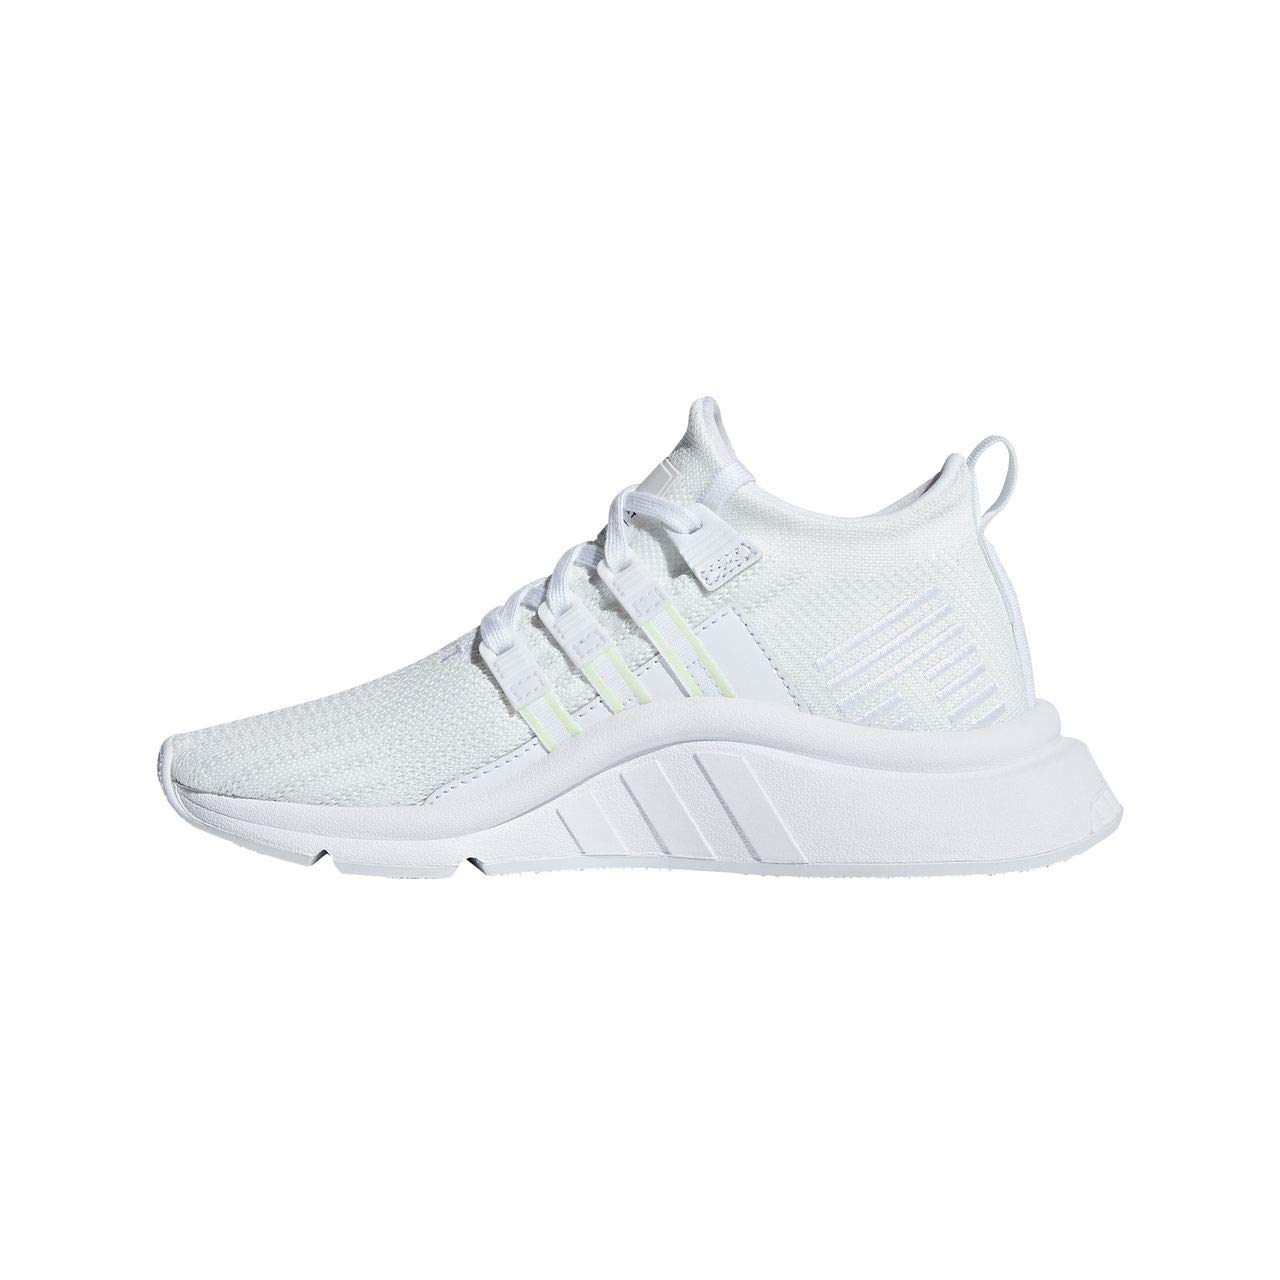 Adidas Originals EQT Equipment Support MID ADV Junior-Turnschuhe B41913 Weiß Gr. 38 (UK 5)